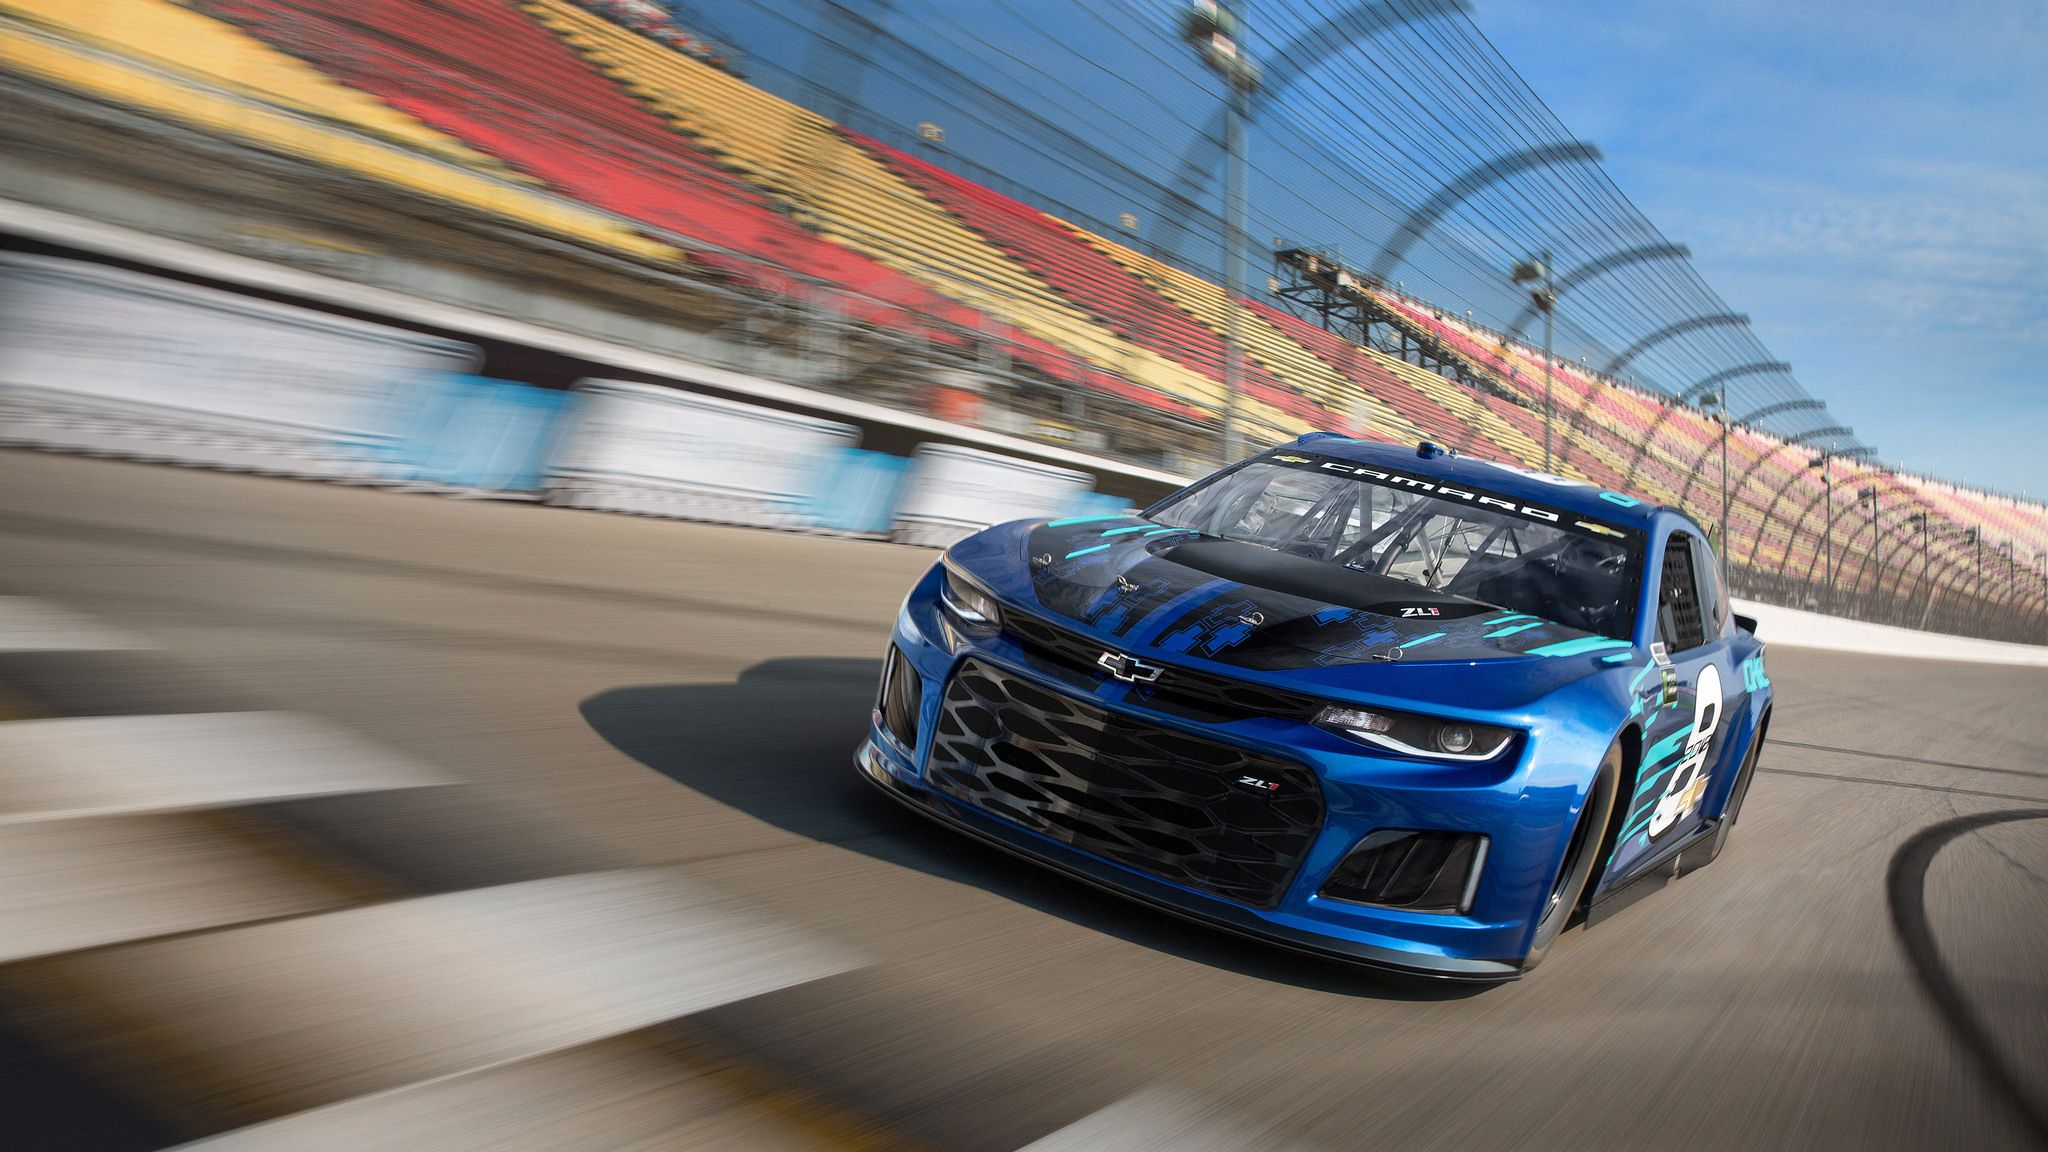 Chevrolet Unveiled Its 2018 Monster Energy Nascar Cup Series Car Thursday At Its Corporate Headquarters In Detroit By Dipping In Camaro Zl1 Chevrolet Camaro Nascar Race Cars